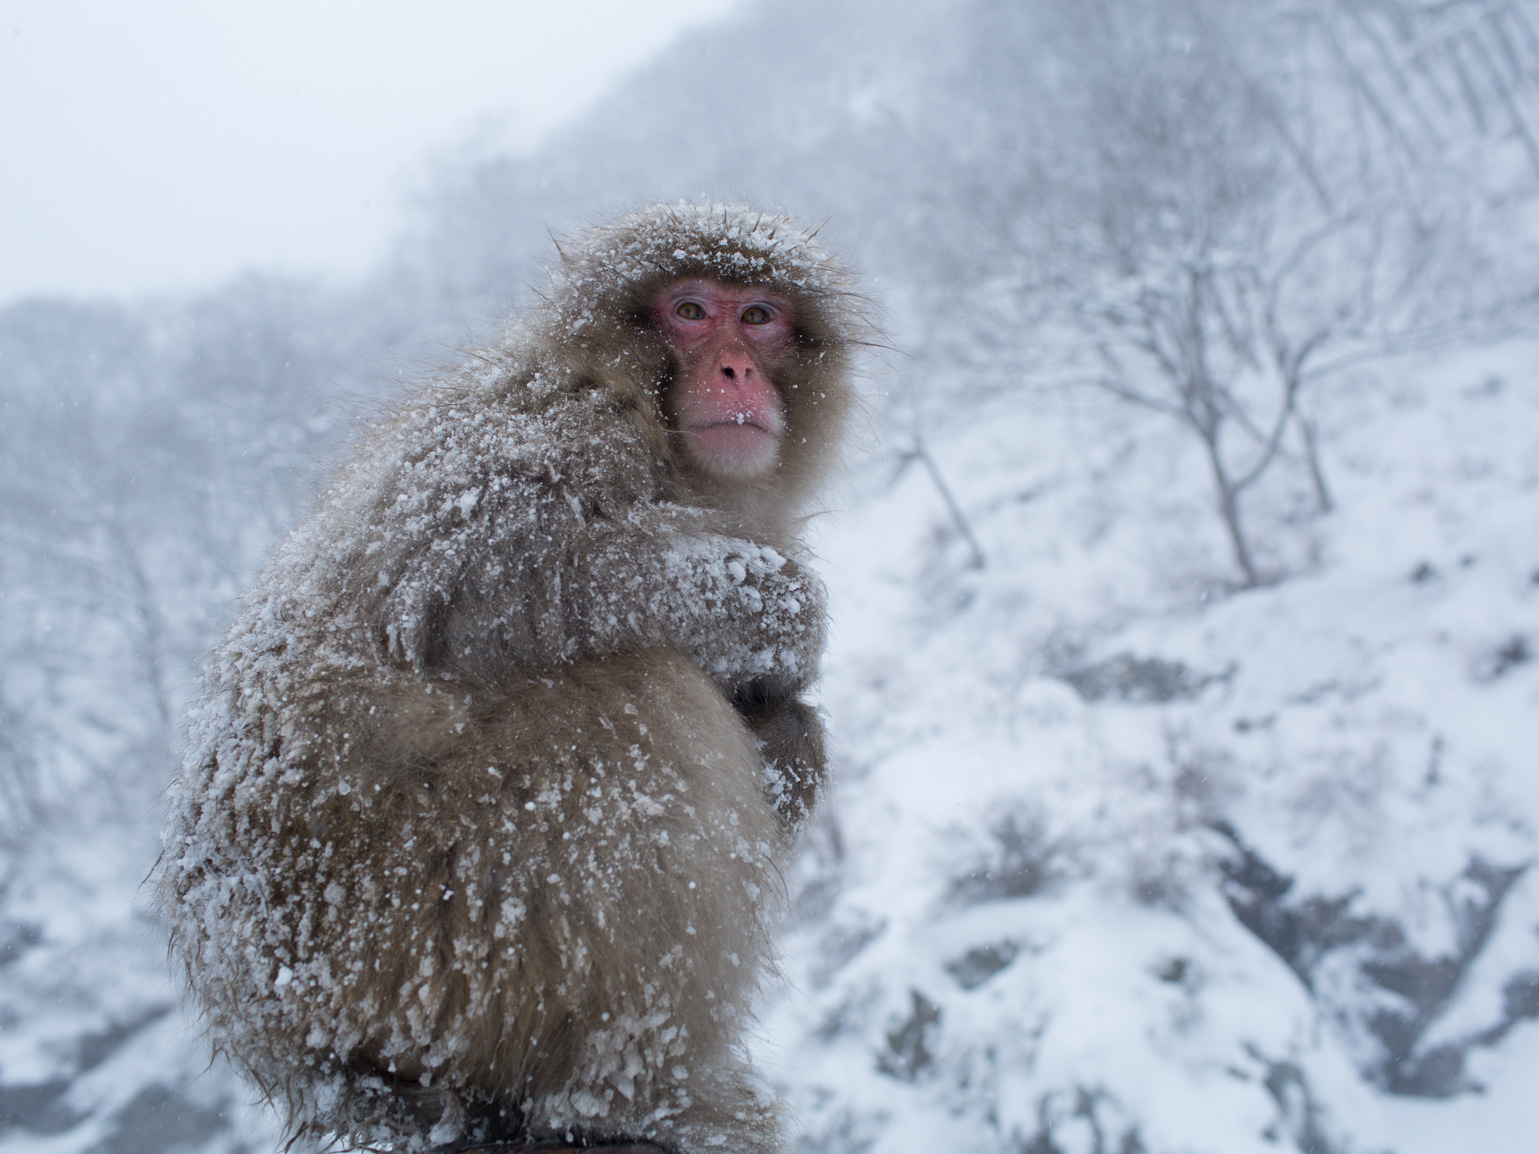 Wallpaper Falling Skies Japanese Macaques Snow Monkeys Of Japan Pictures Cbs